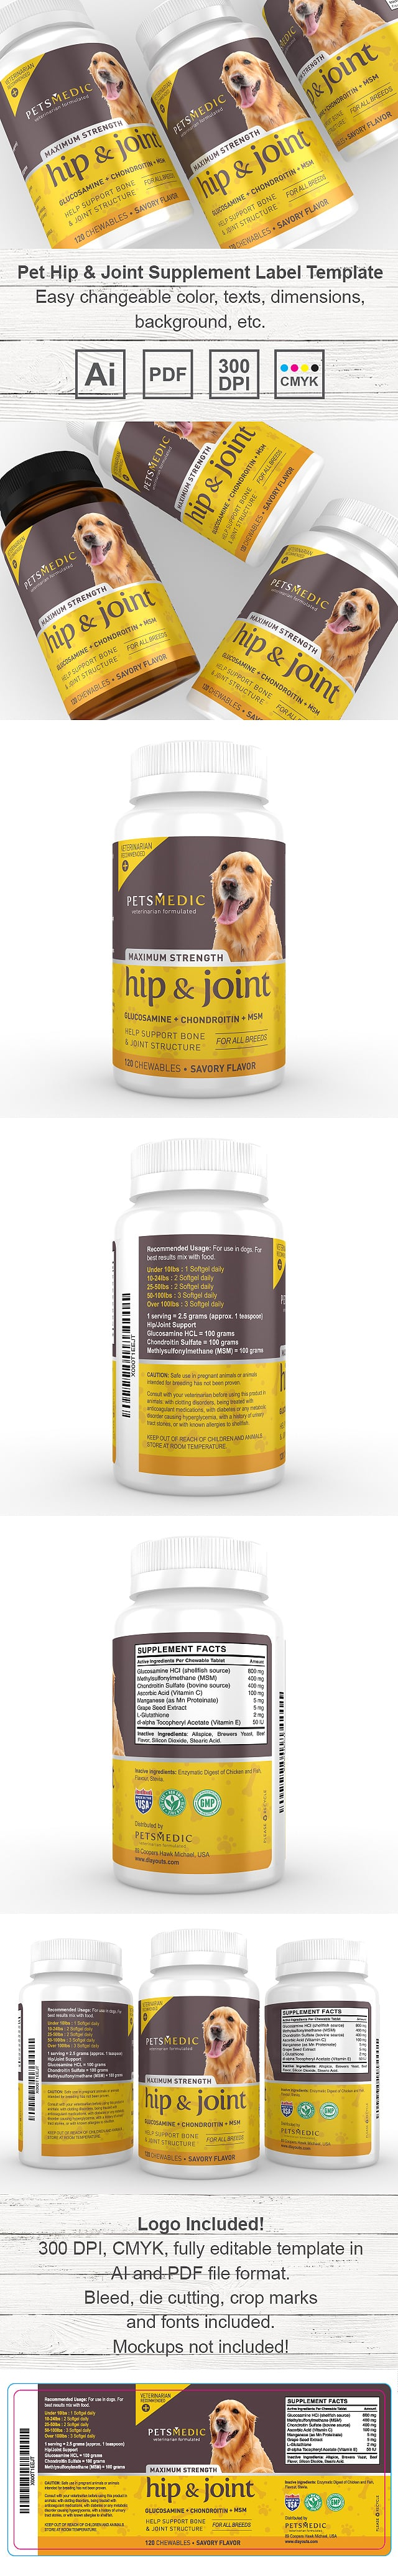 Pet Hip and Joint Supplement Label Template